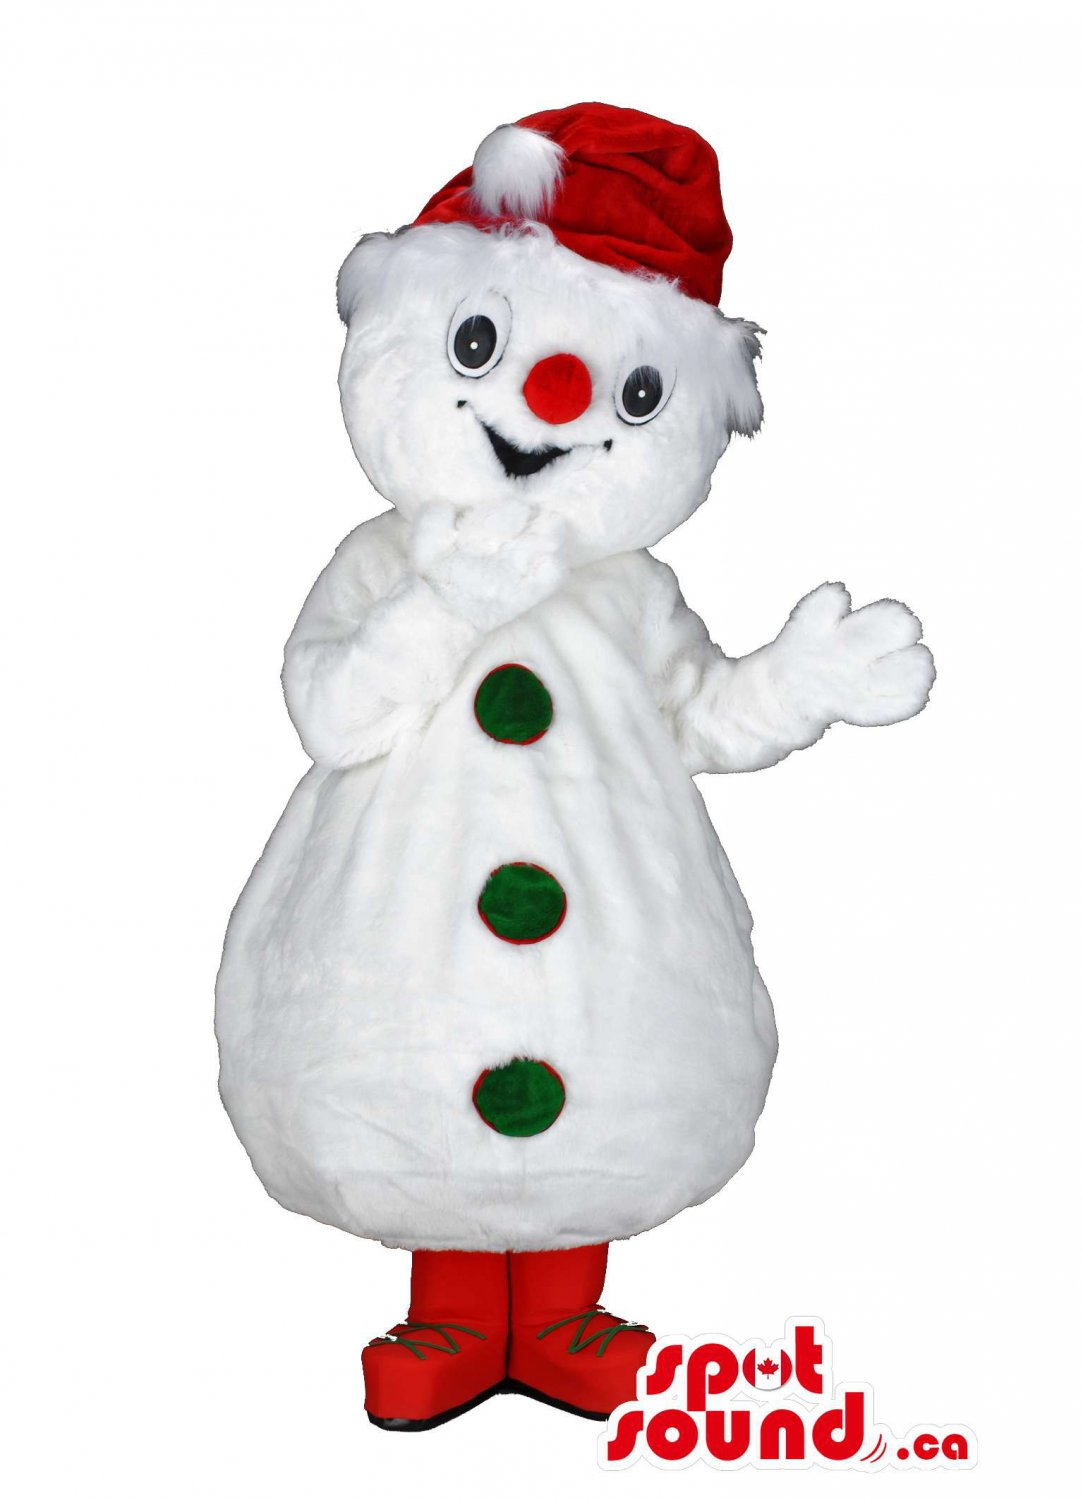 Snowman Mascot SpotSound Canada With Christmas Hat And Red Shoes And Nose